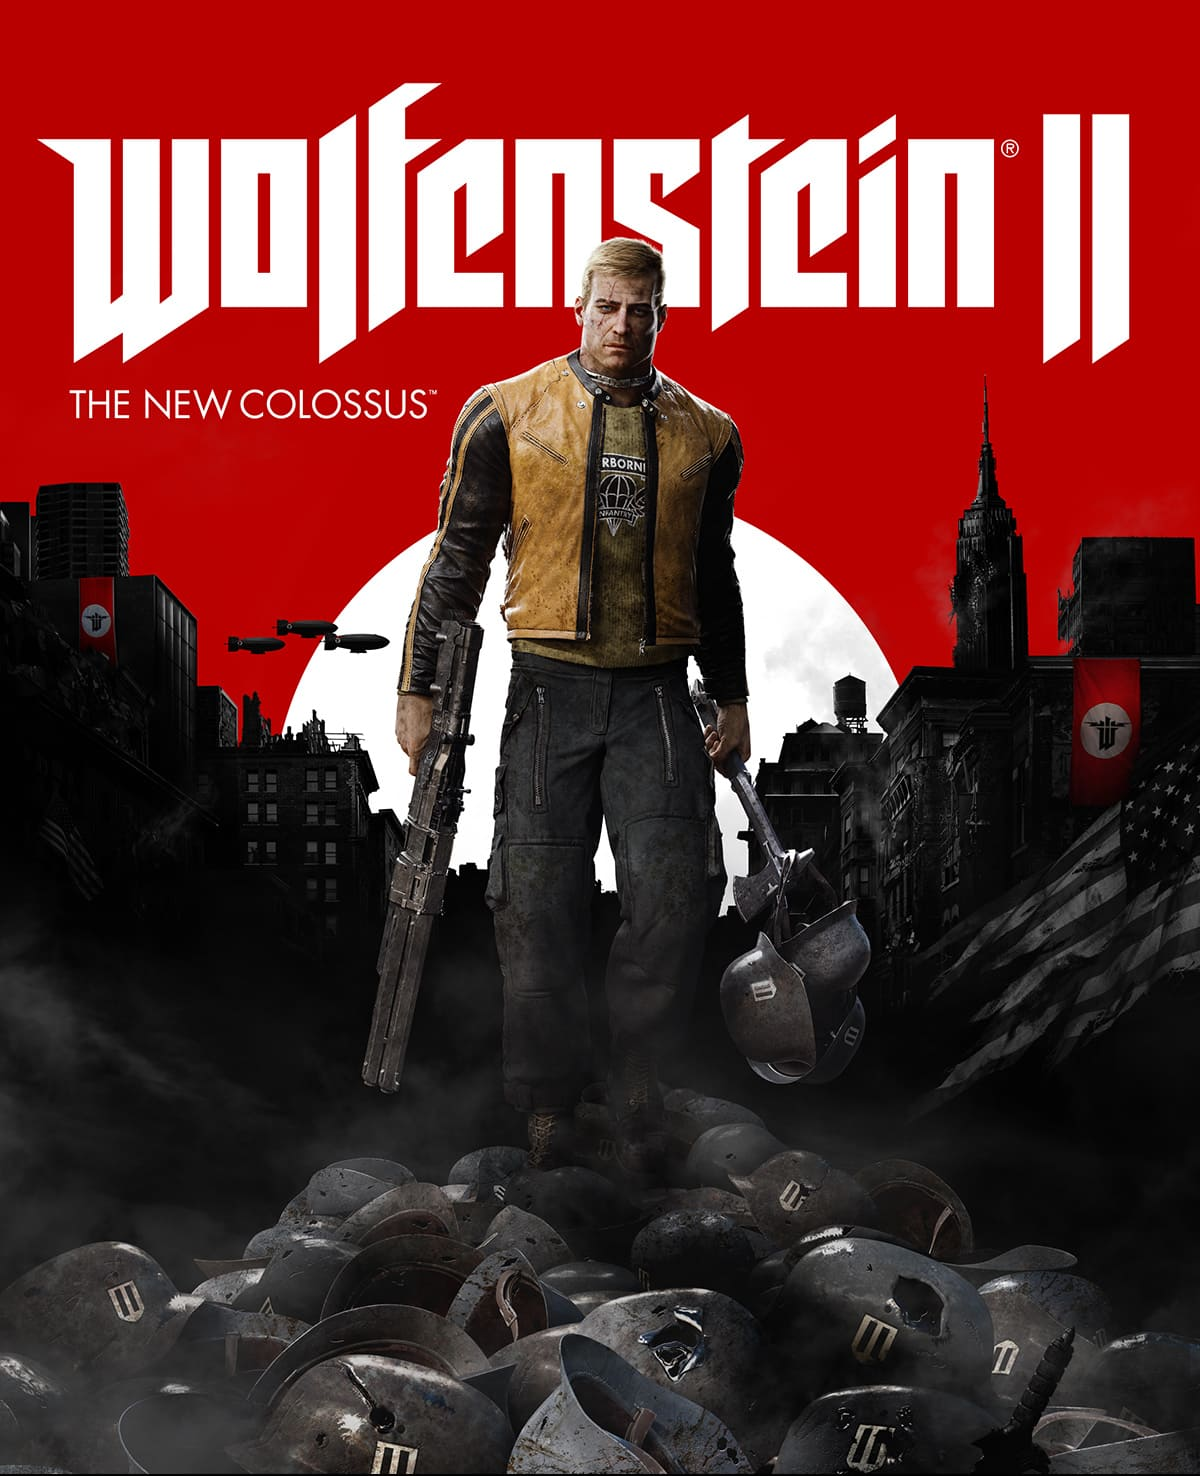 Wolfenstein II: The New Colossus (PC Digital) and Others - 25% Off on top of Cyber Monday Prices (Requires Coupon Code)